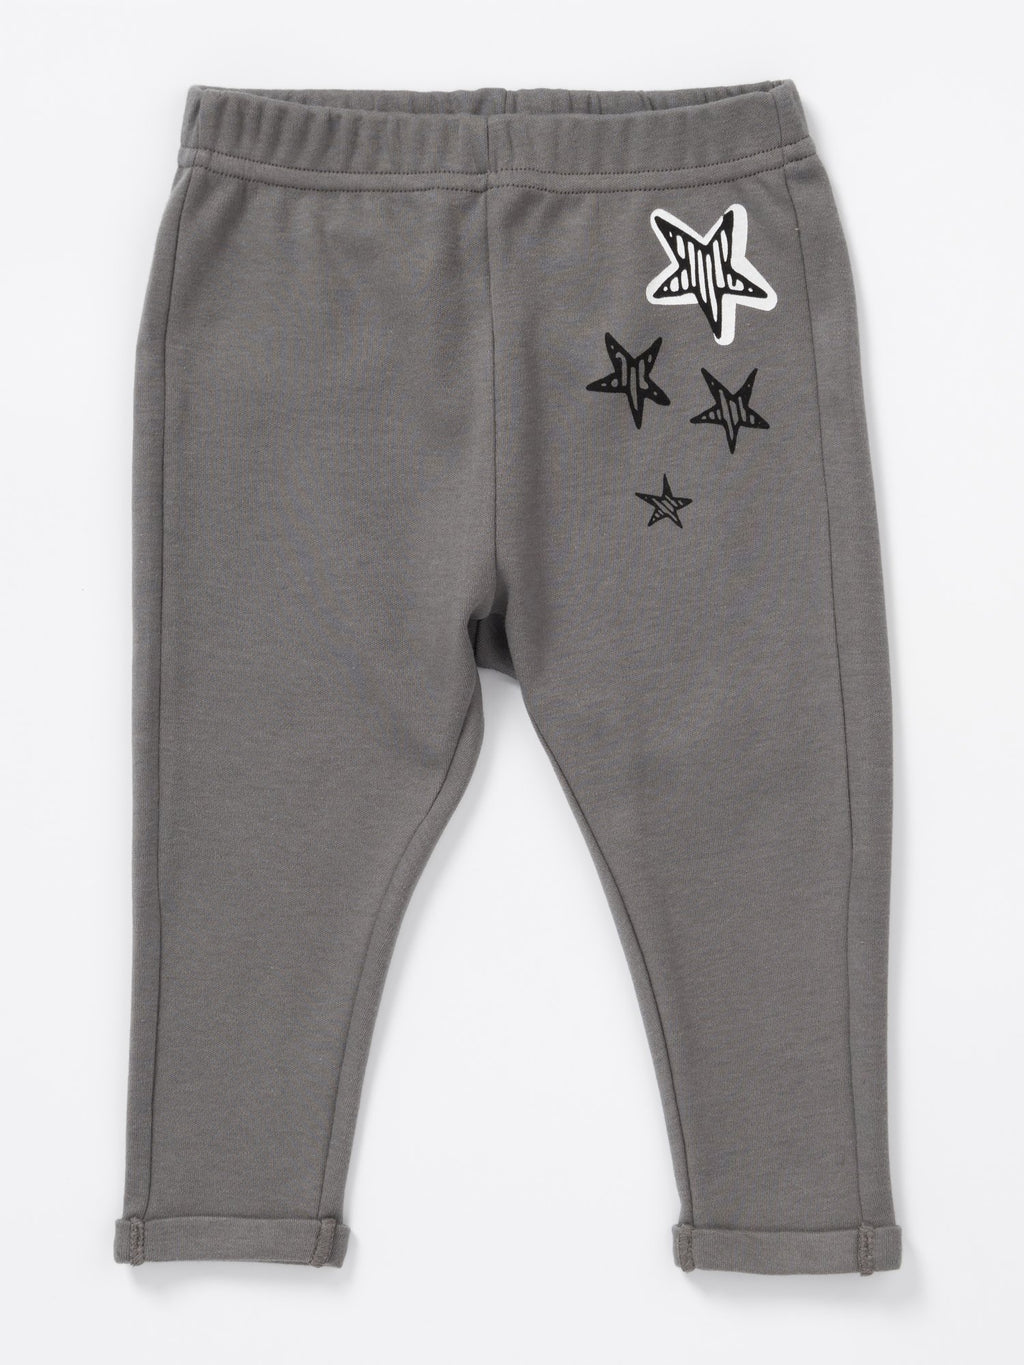 Artie - Kids Grey Leggings with Star Design - Stylemykid.com